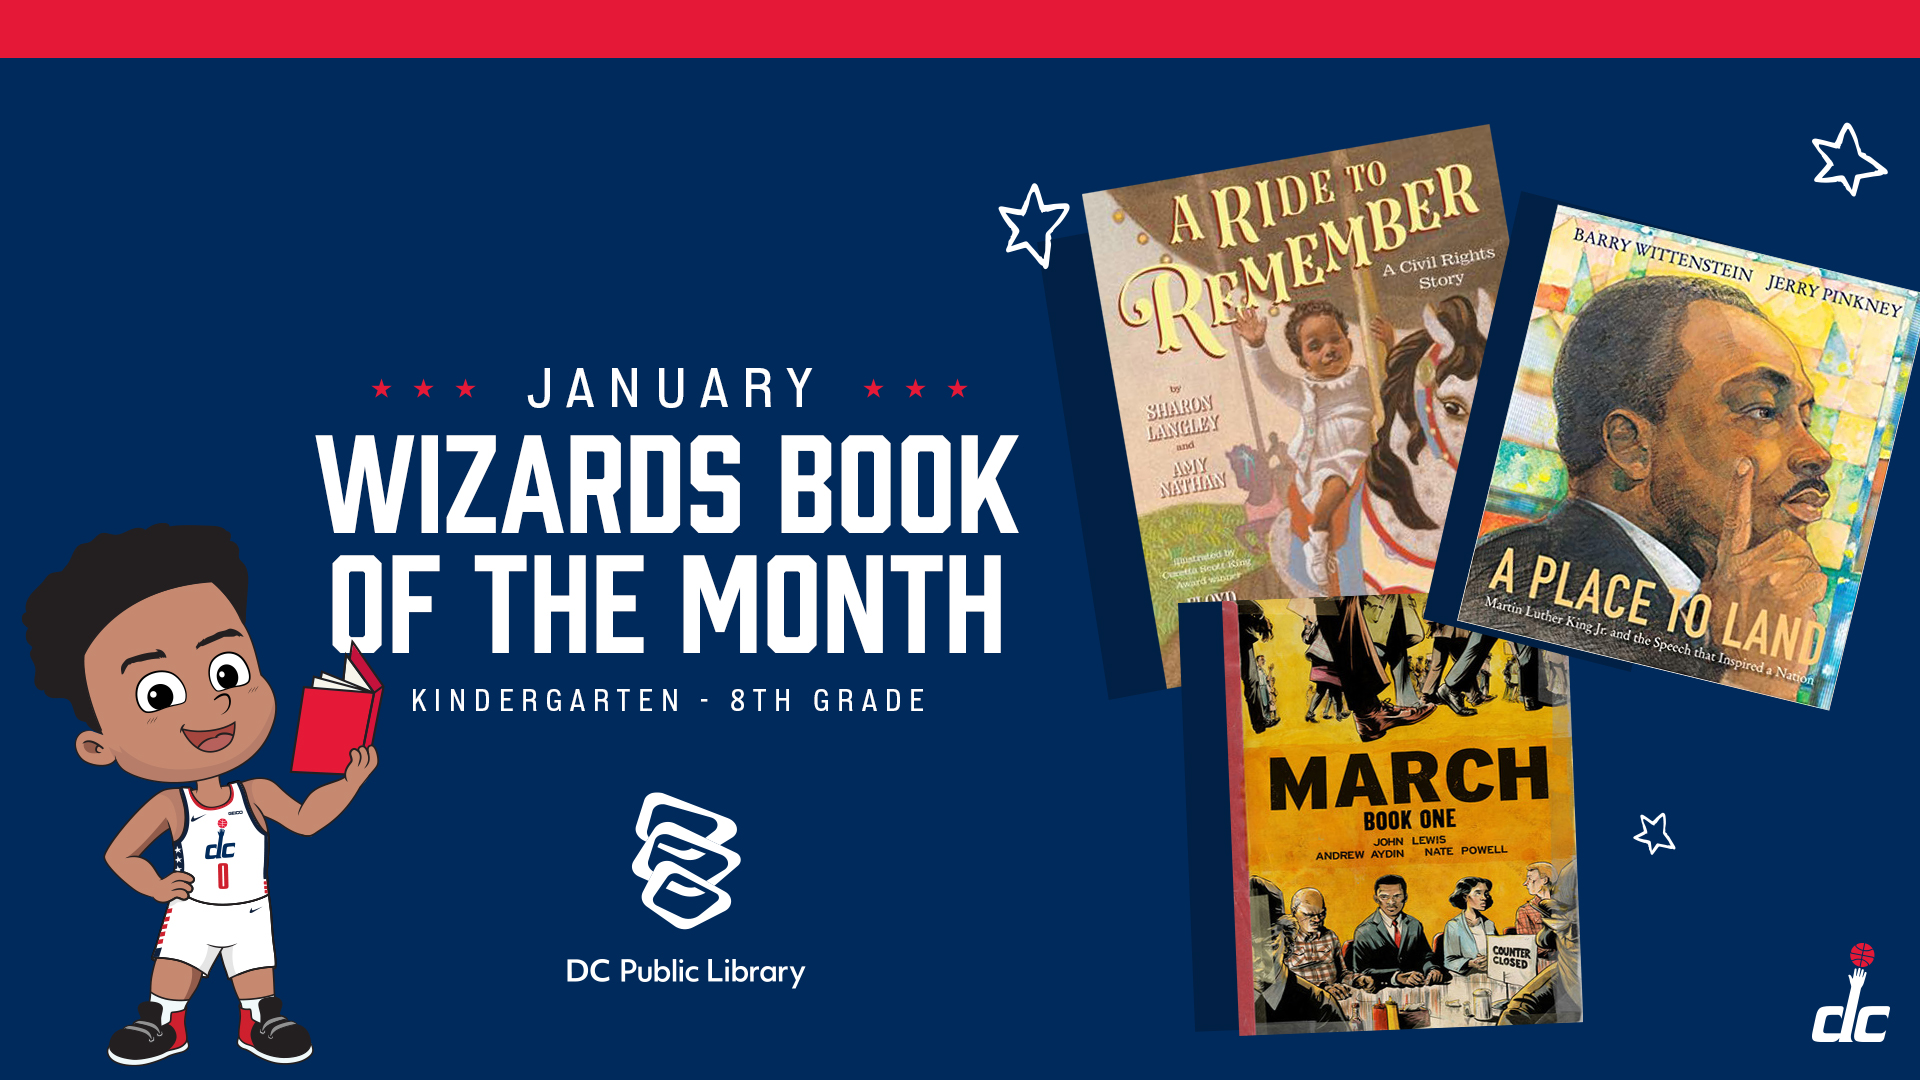 January Wizards Book of the Month